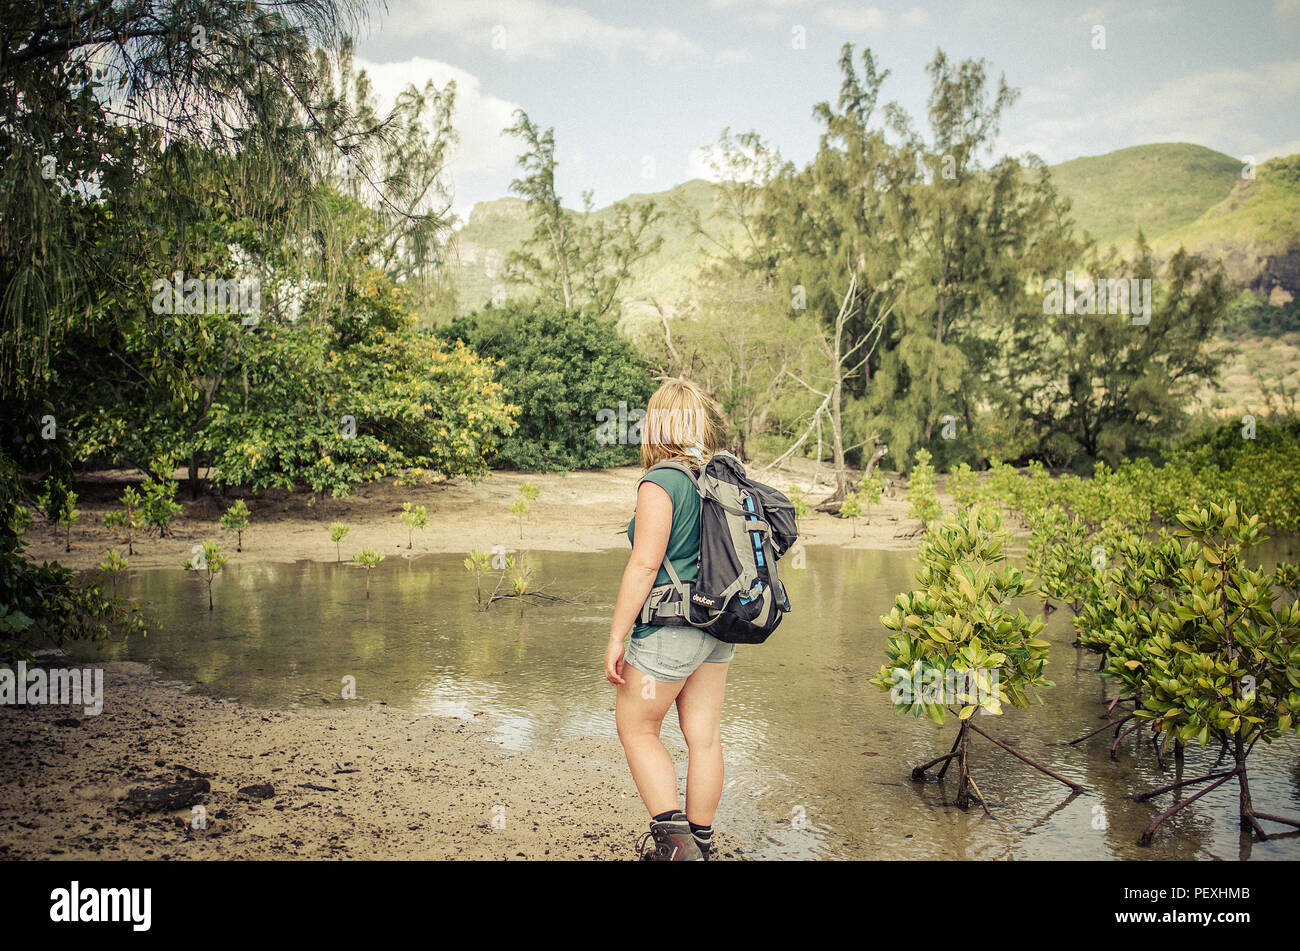 Girl backpacking trip trough mauritius mangroove forest - Stock Image